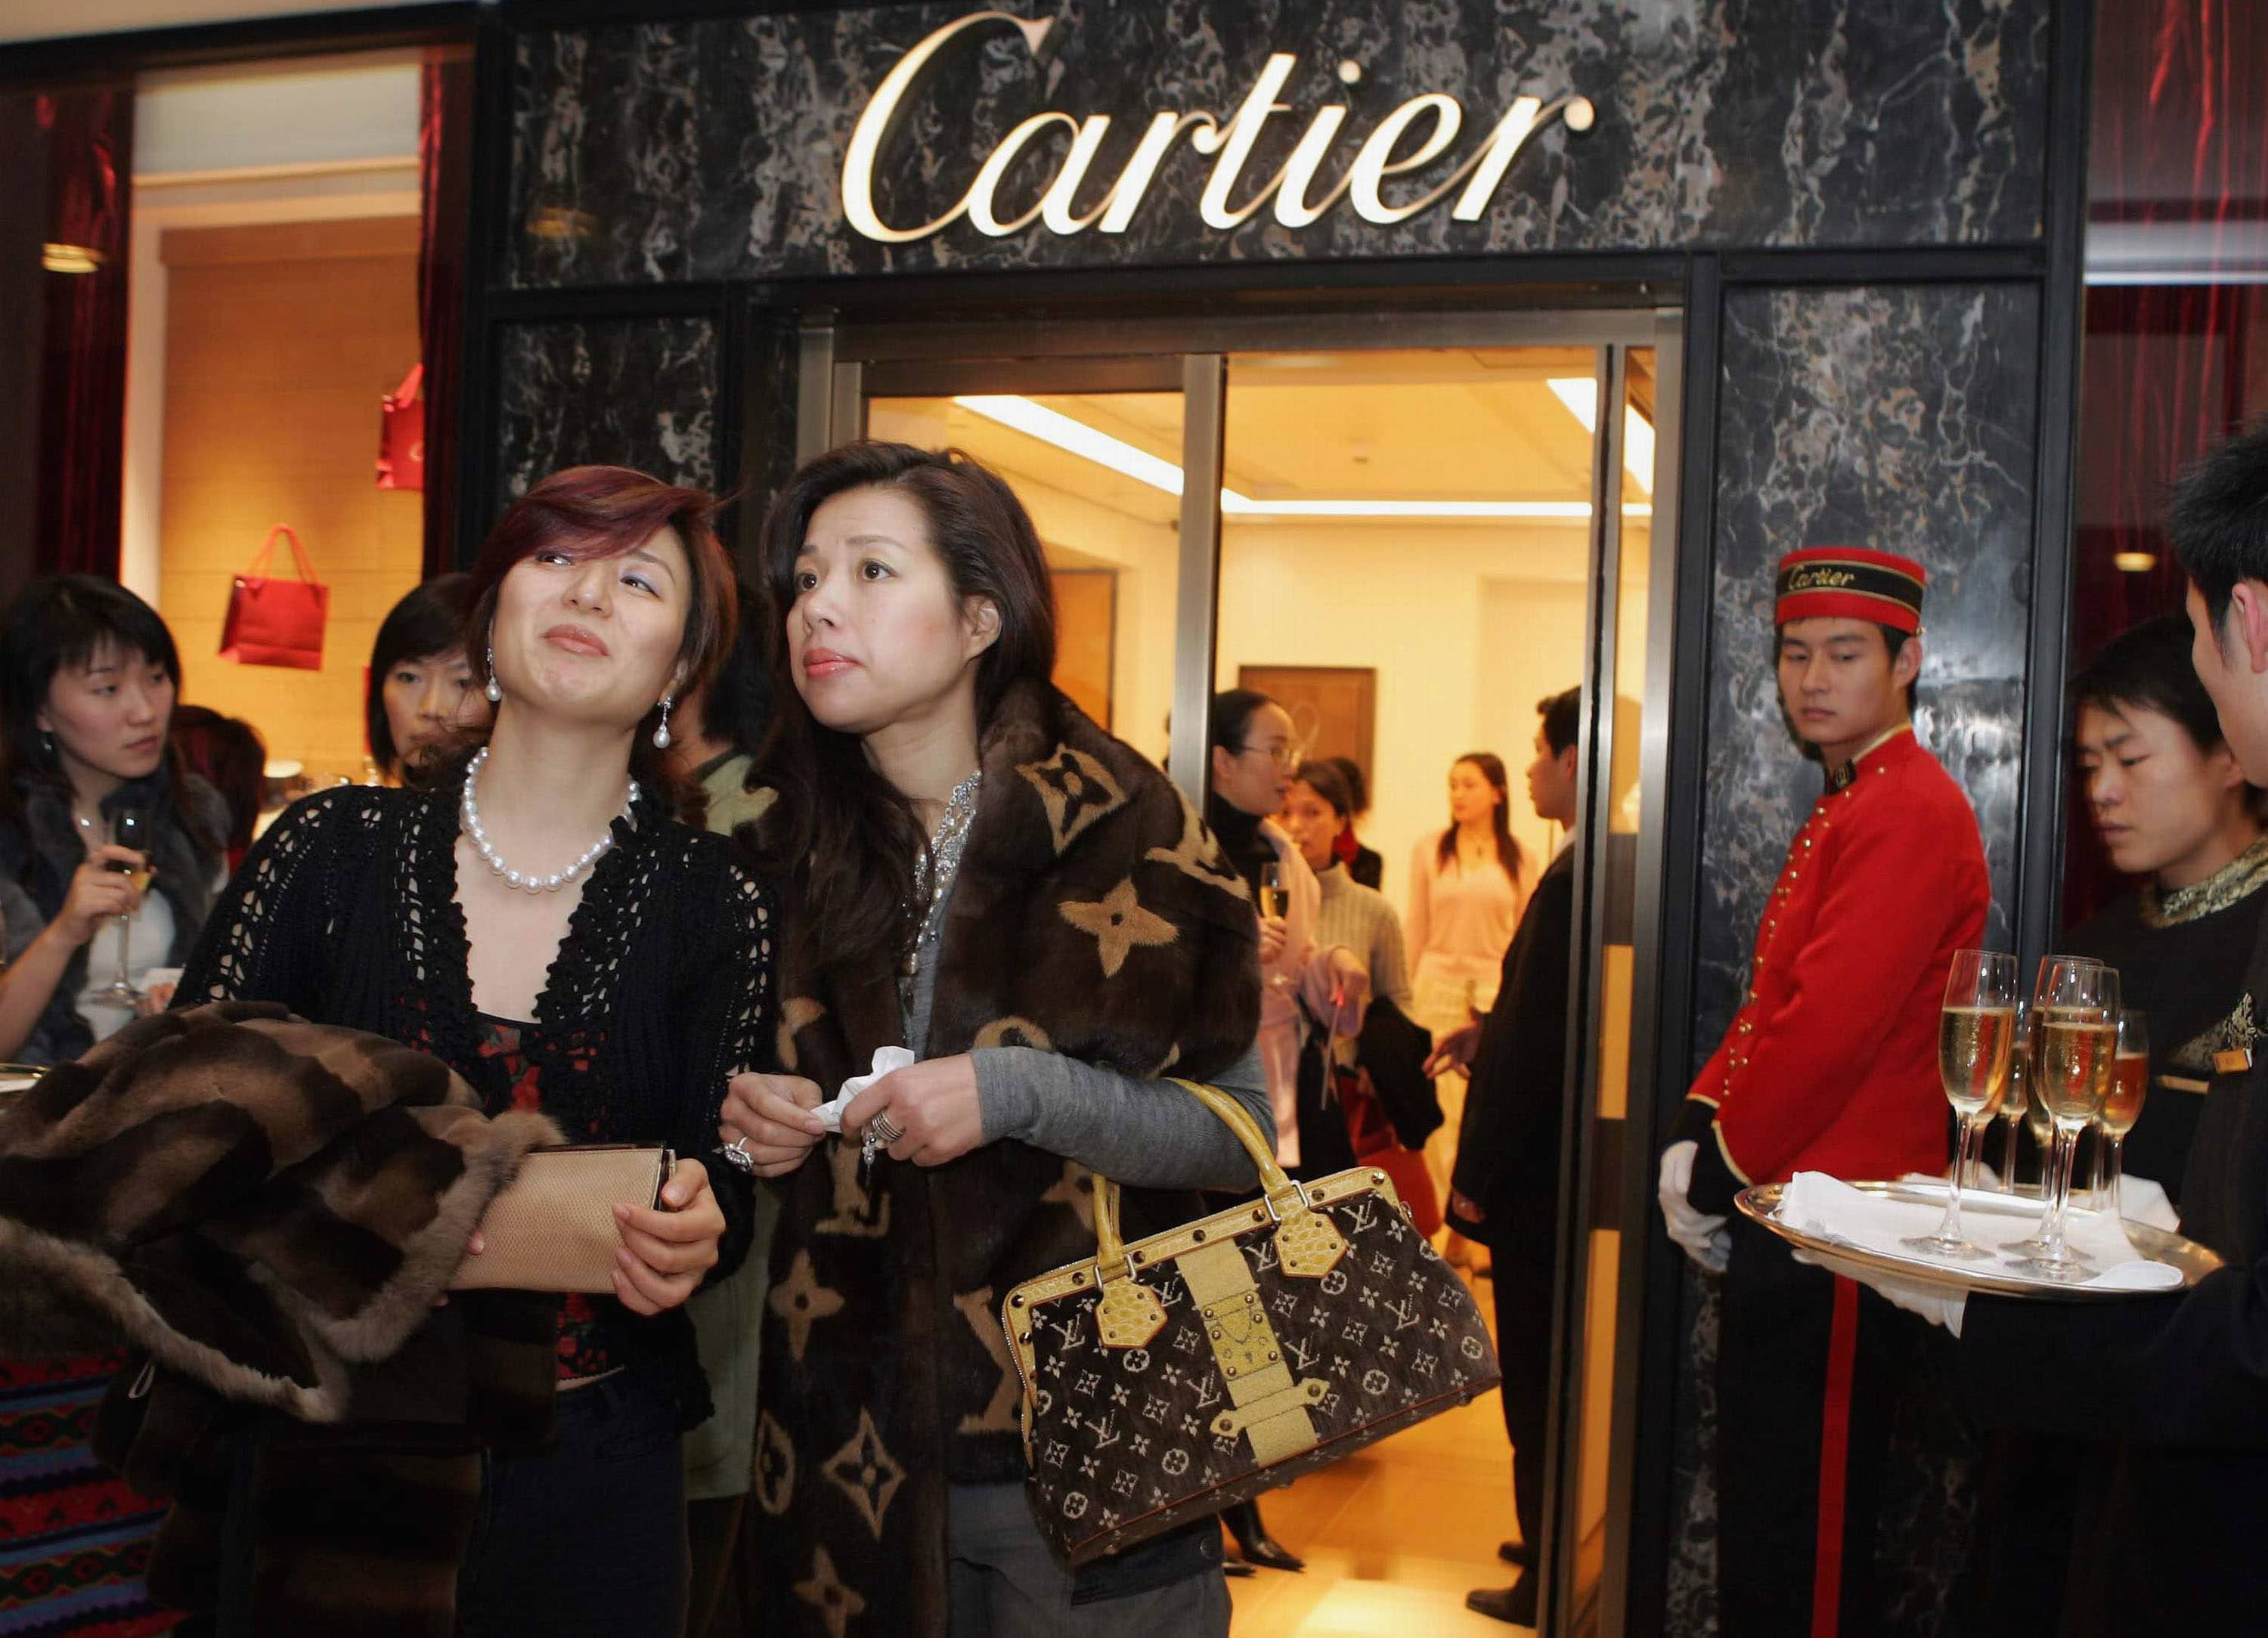 Cartier flagship store in Shanghai, China.